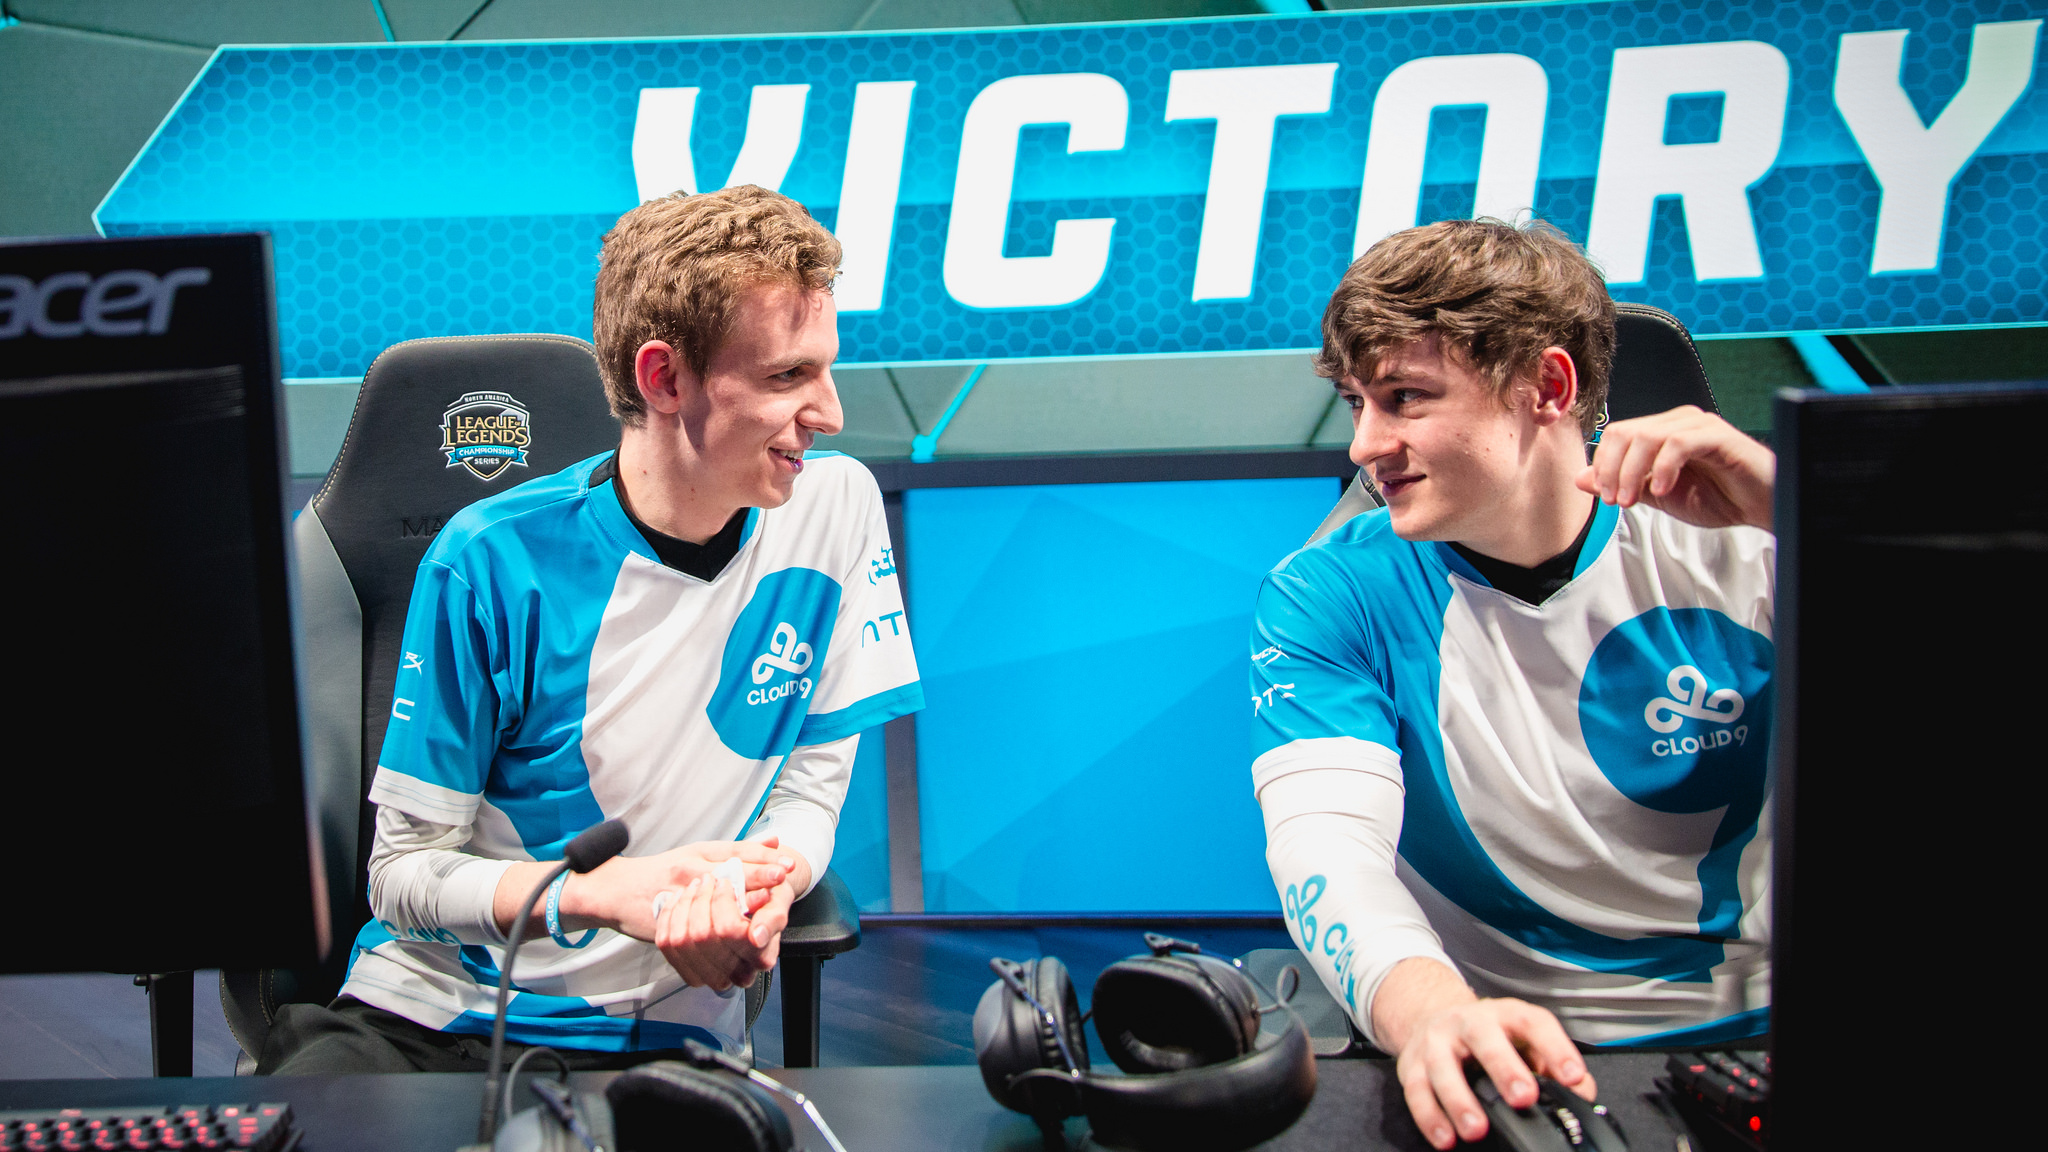 picture courtesy of lolesports Flickr